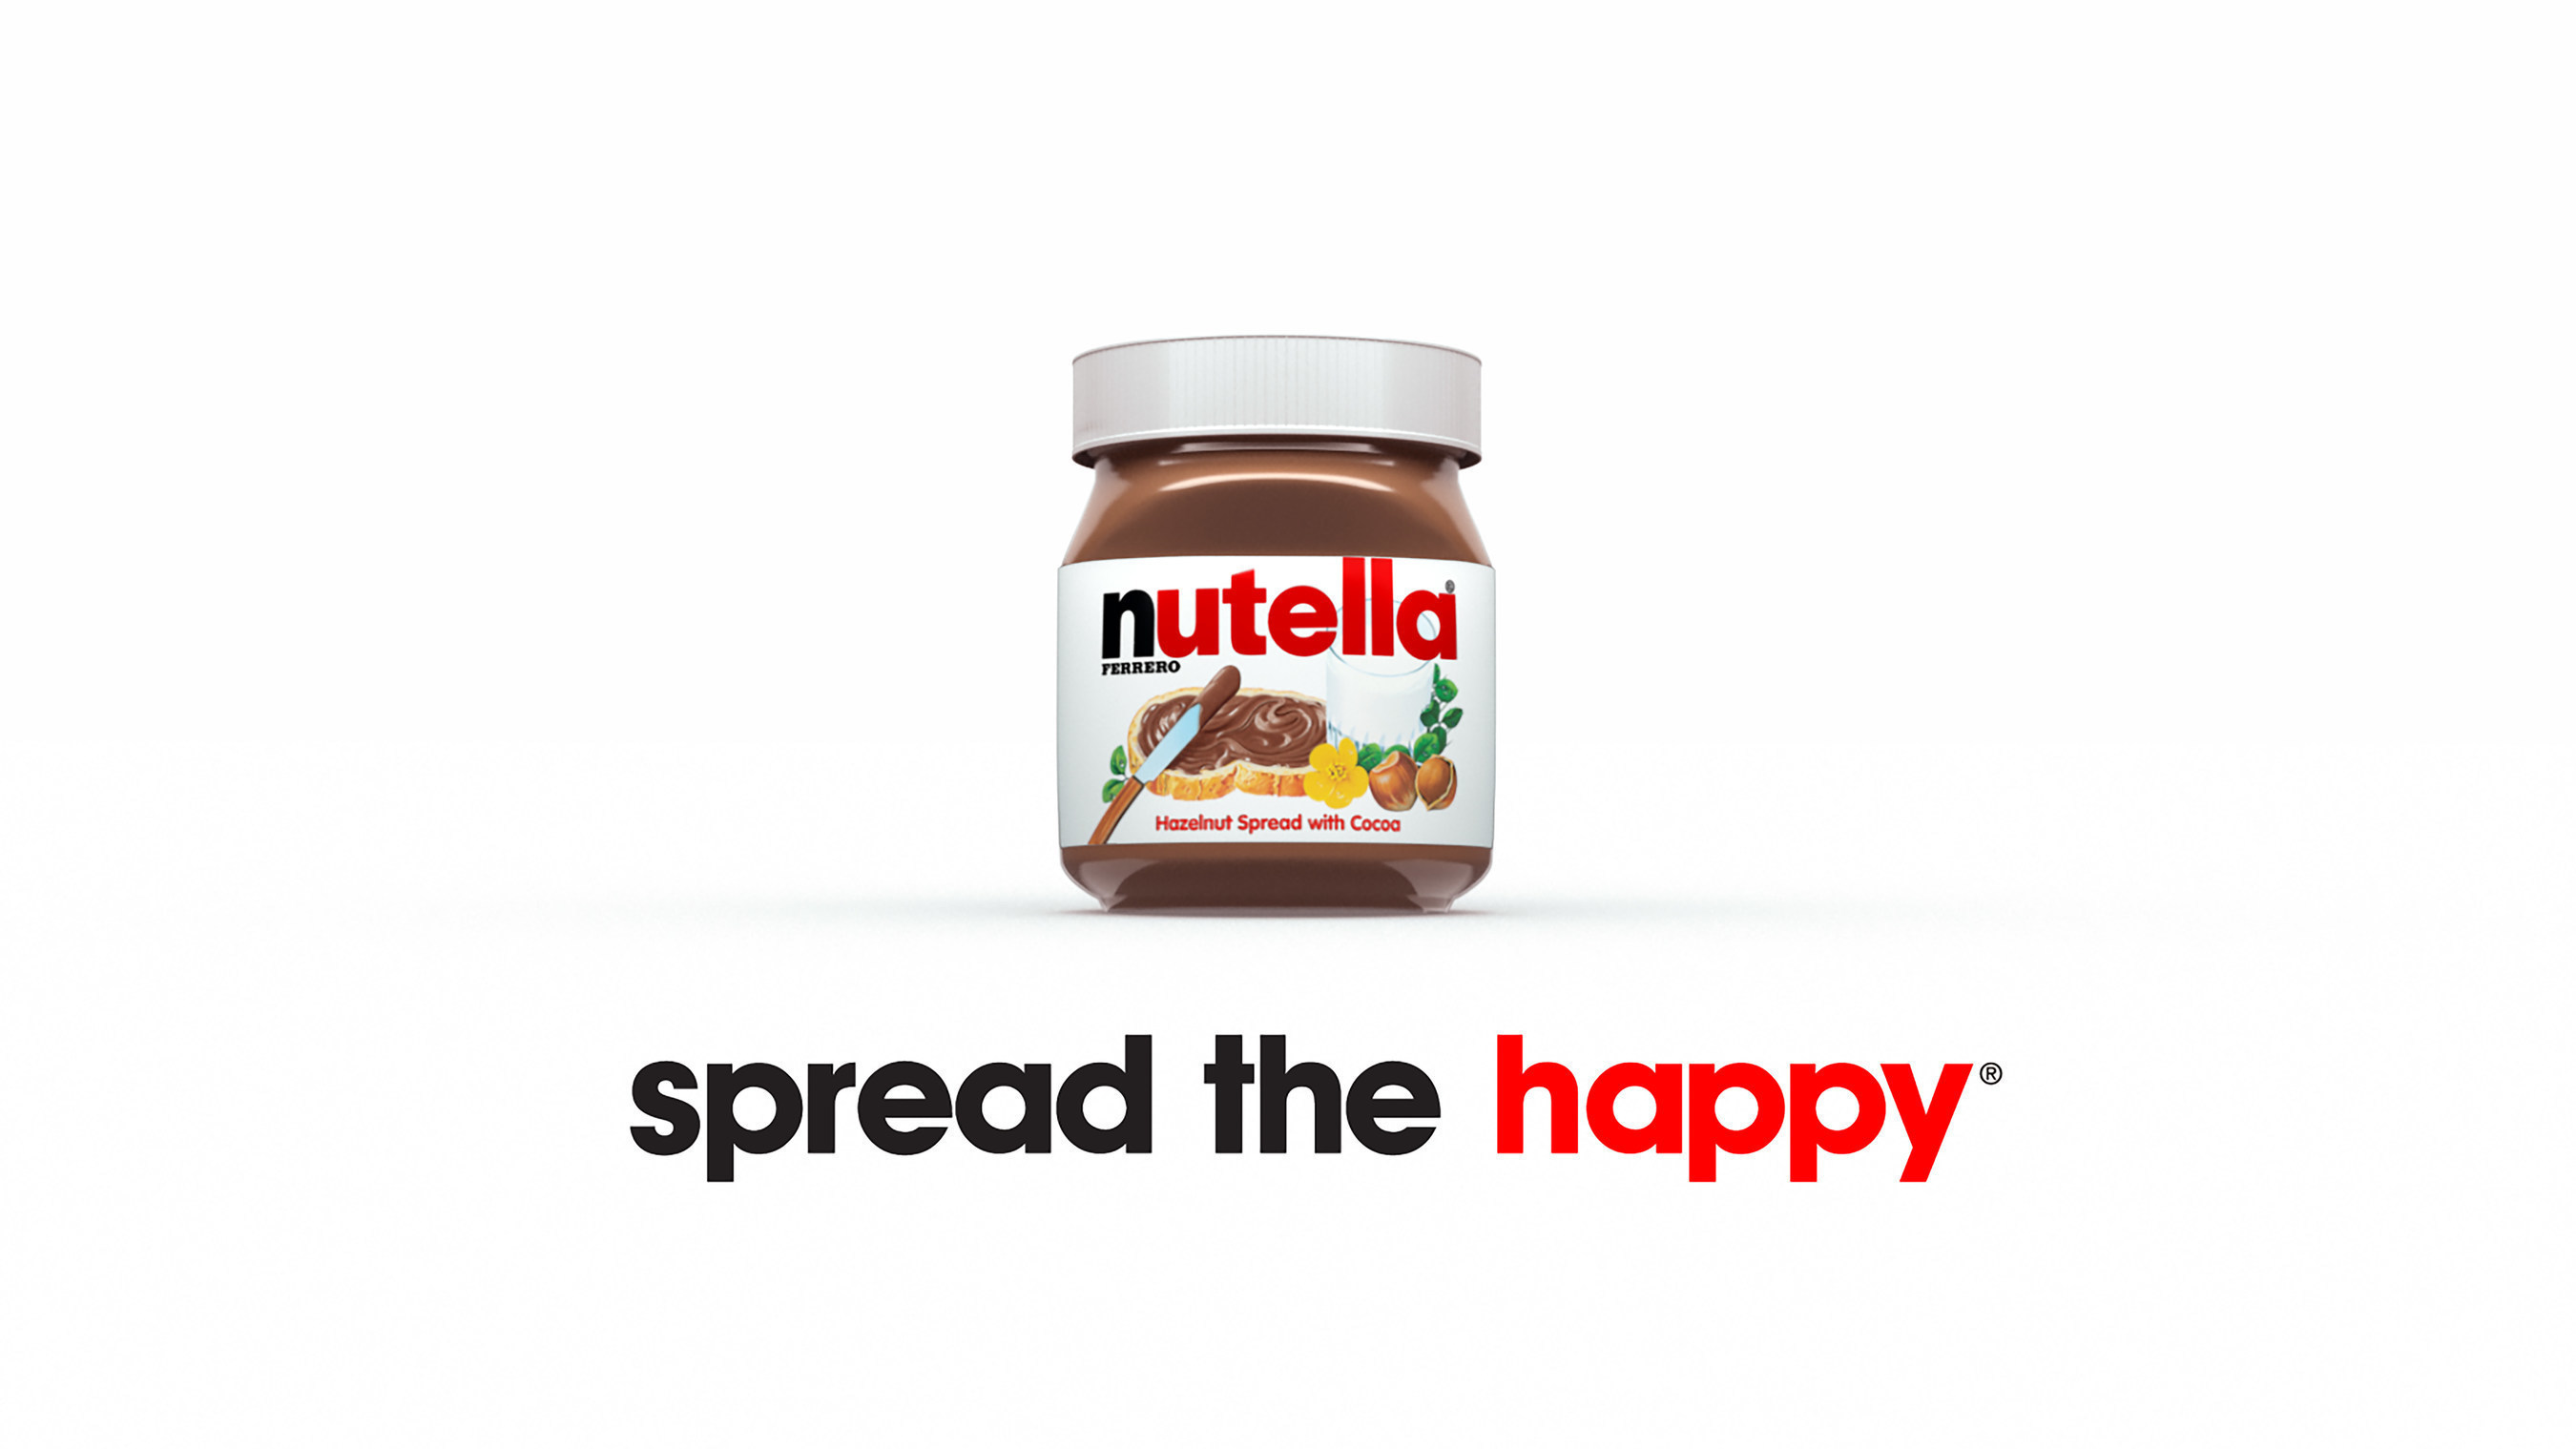 """Check back on the Nutella USA YouTube page as a new """"Spread the Happy"""" video rolls out each week starting today."""